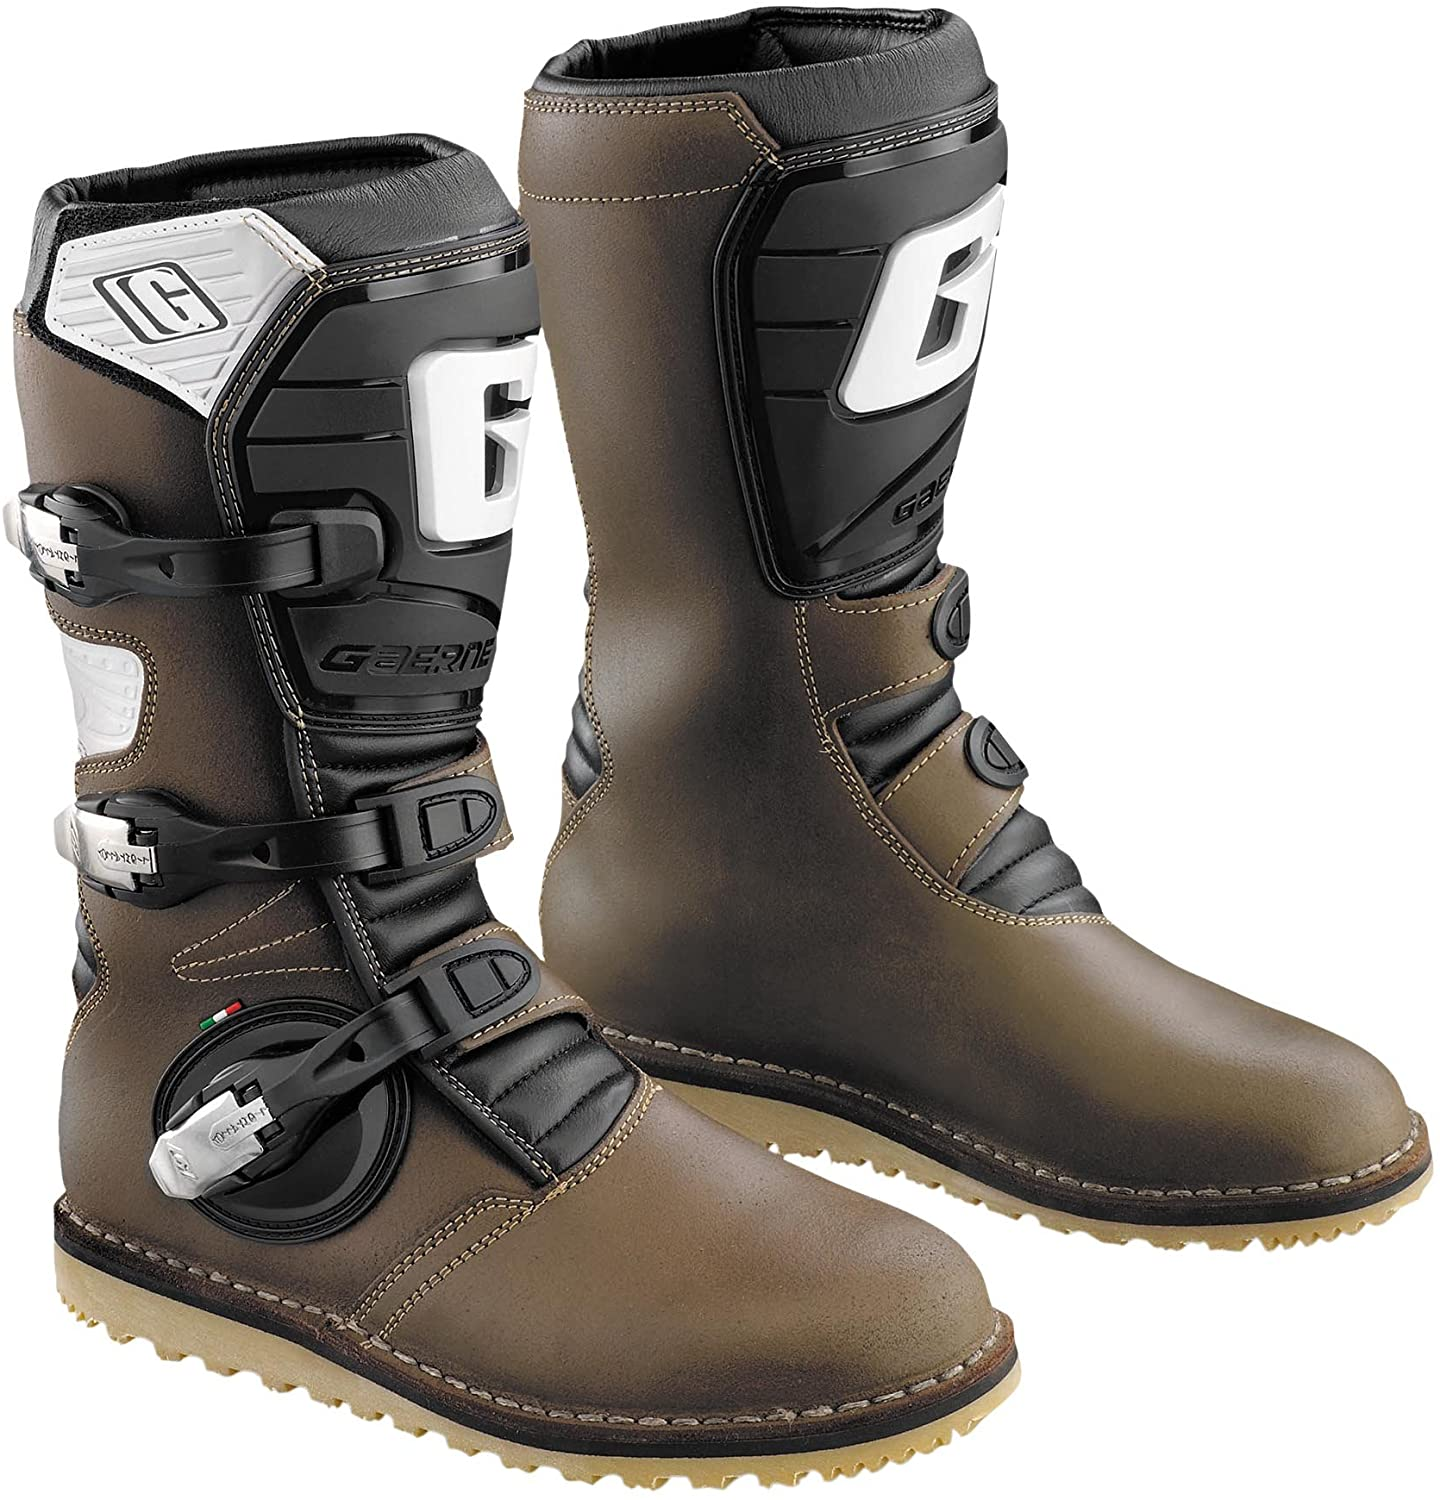 Gaerne Balance Pro-Tech Boots (12) (Brown)